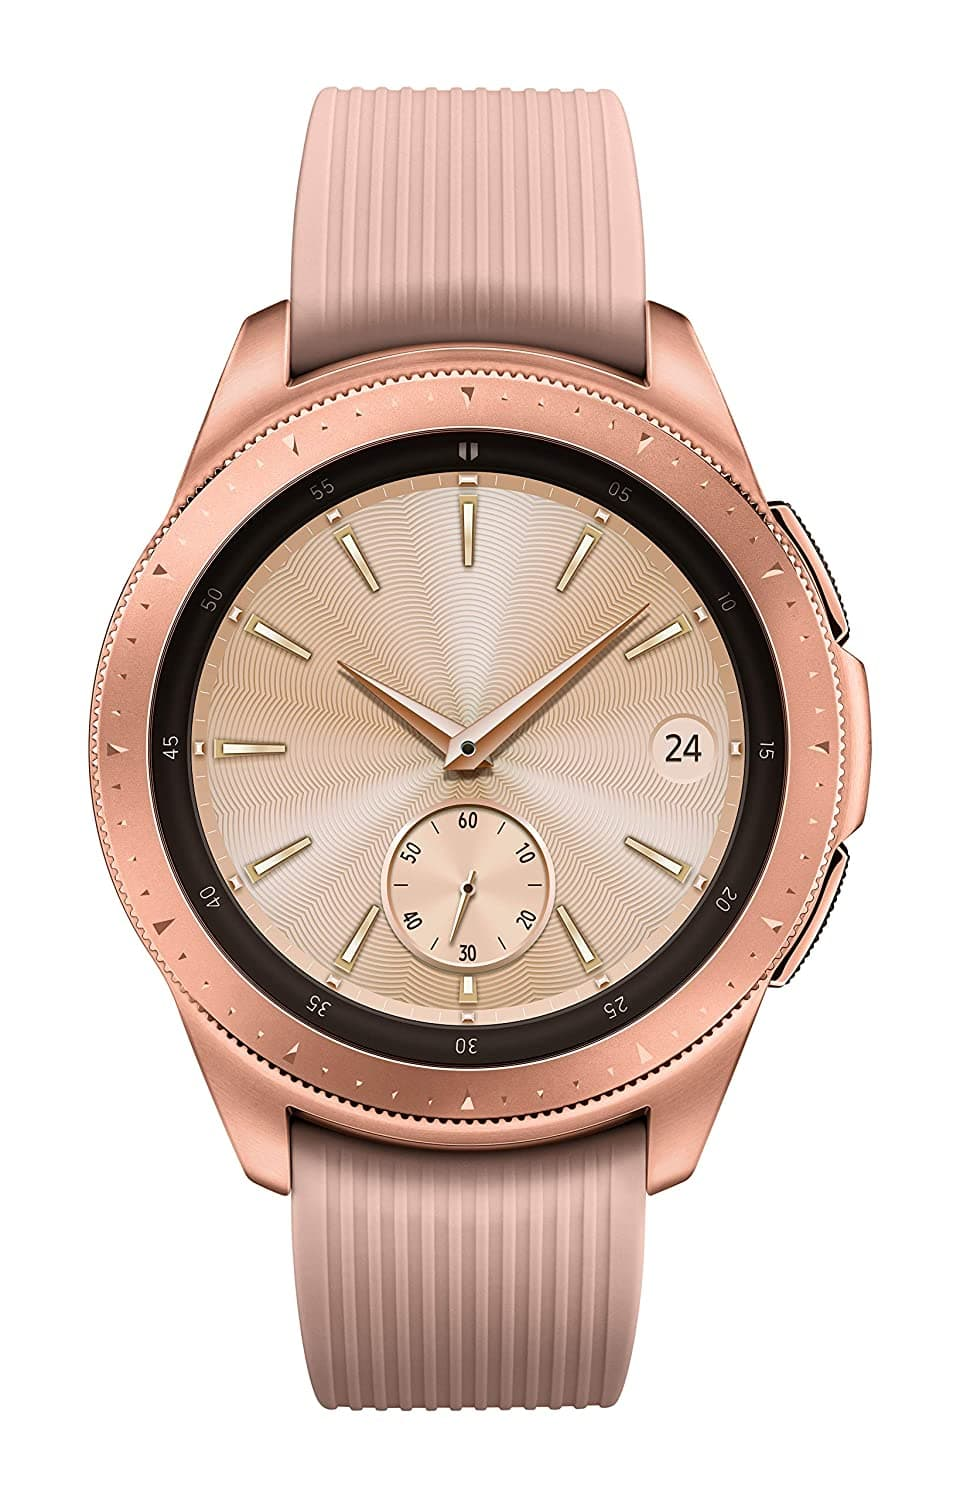 Samsung Galaxy Watch (42mm, GPS, Bluetooth) – Rose Gold (US Version) $169